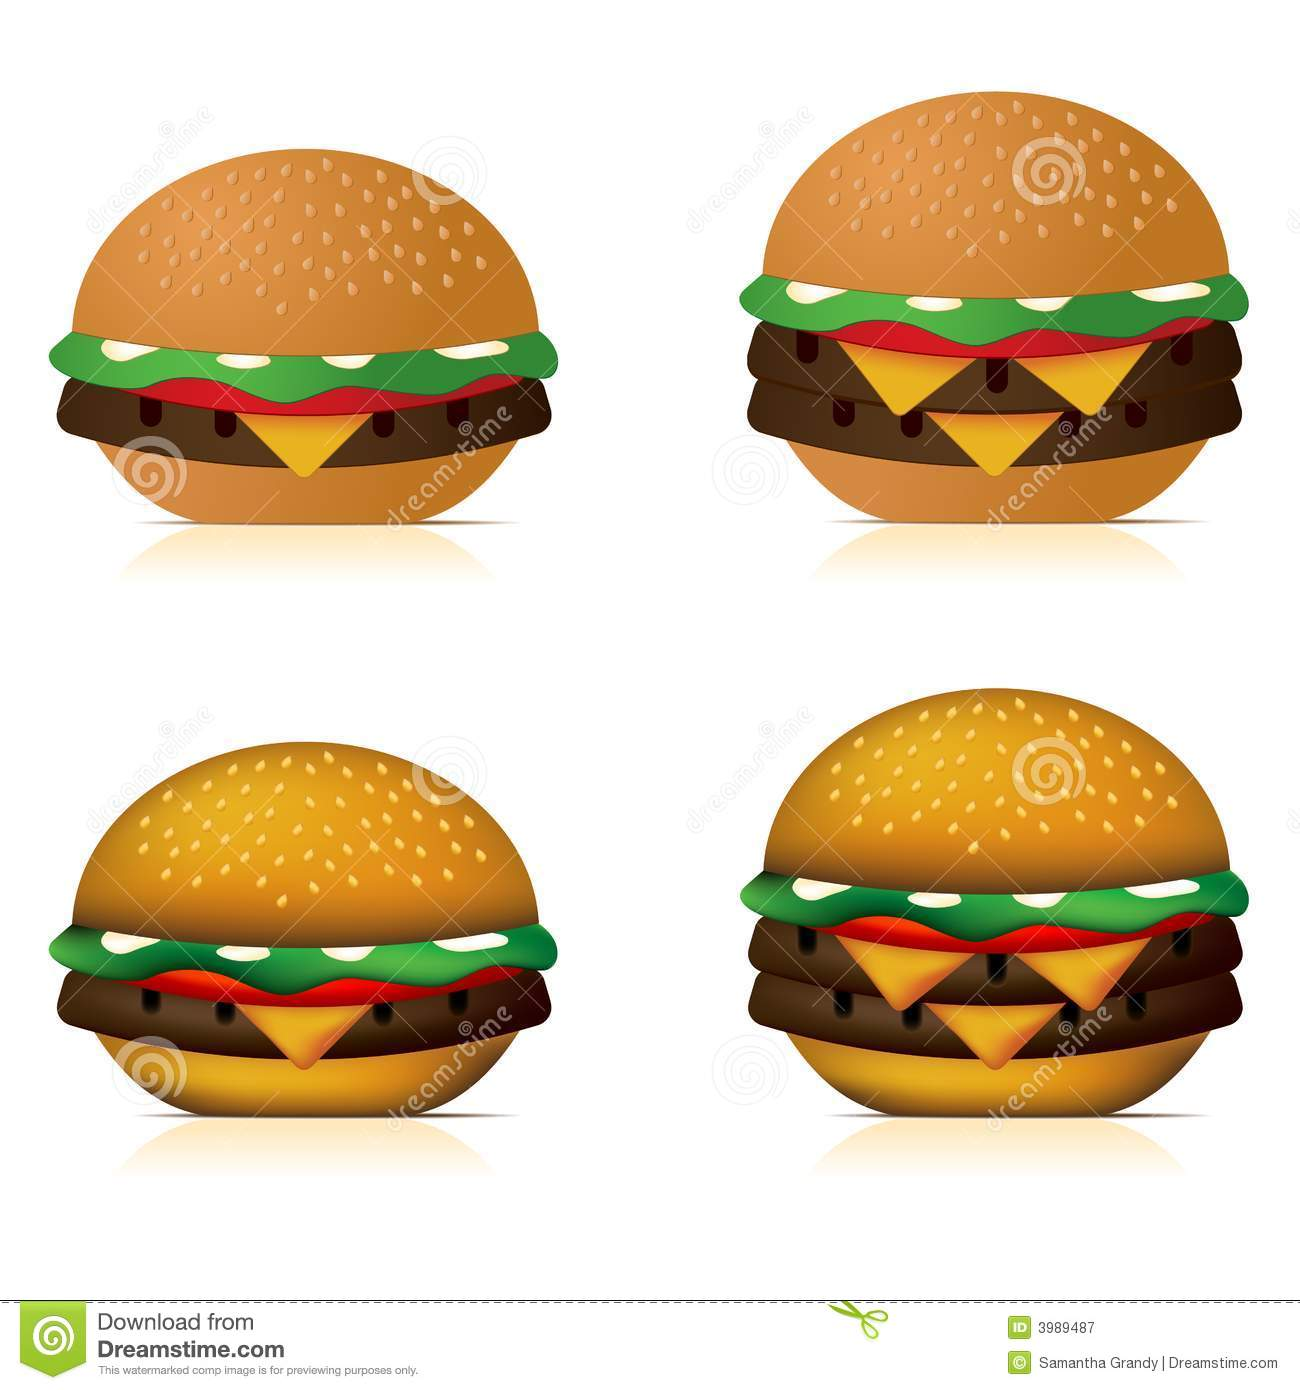 Cheeseburgers Royalty Free Stock Photography - Image: 3989487